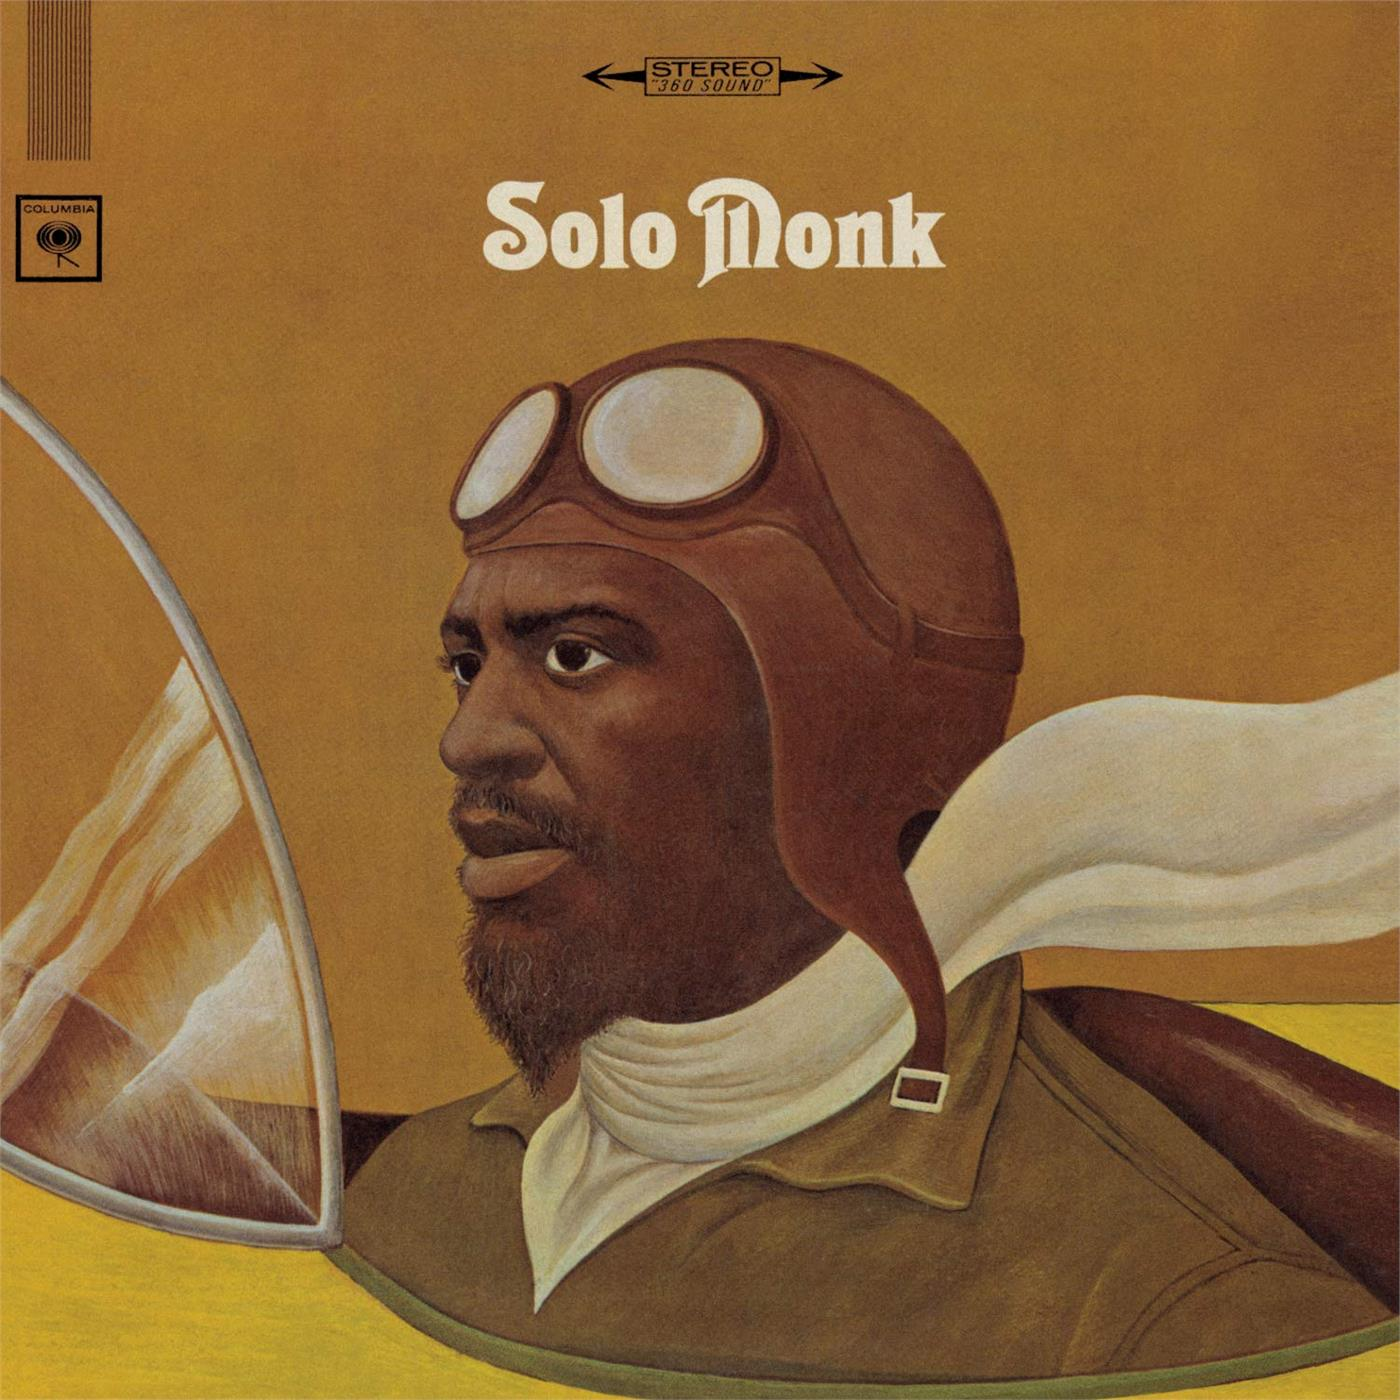 MOVLP 843 Music on Vinyl  Thelonious Monk Solo Monk (LP)